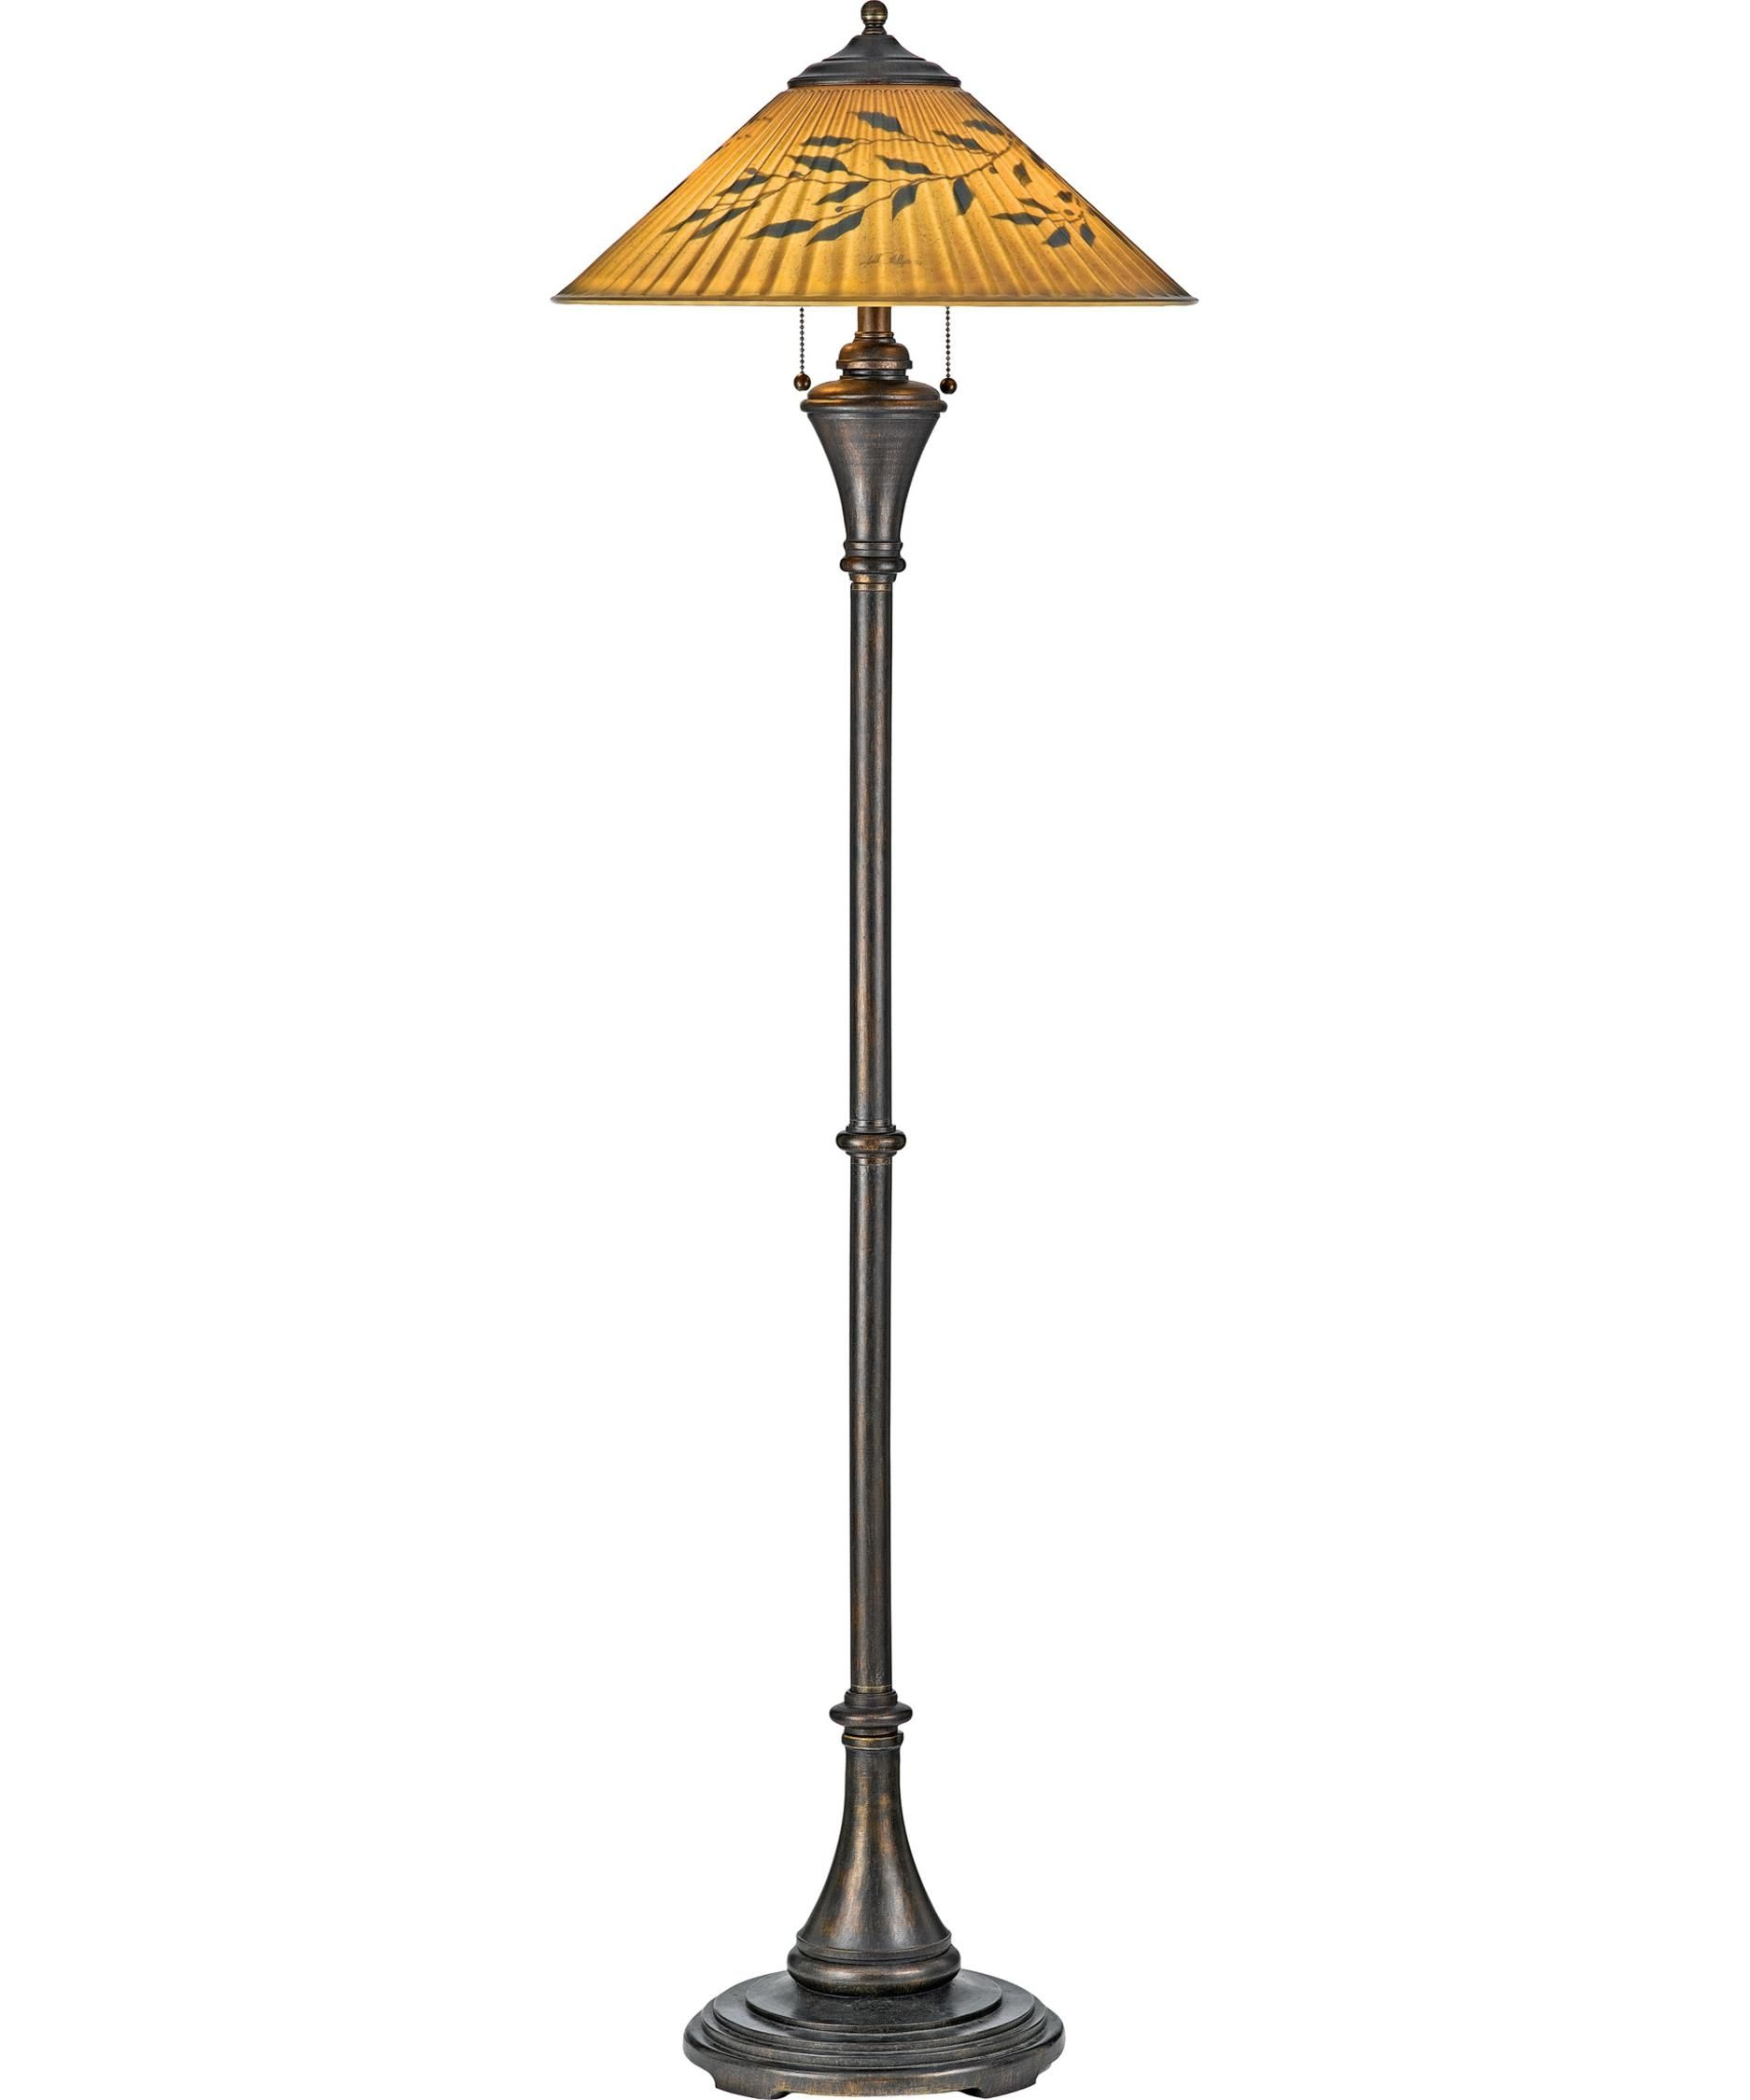 Mountain lodge floor lamp afshowcaseprop pinterest